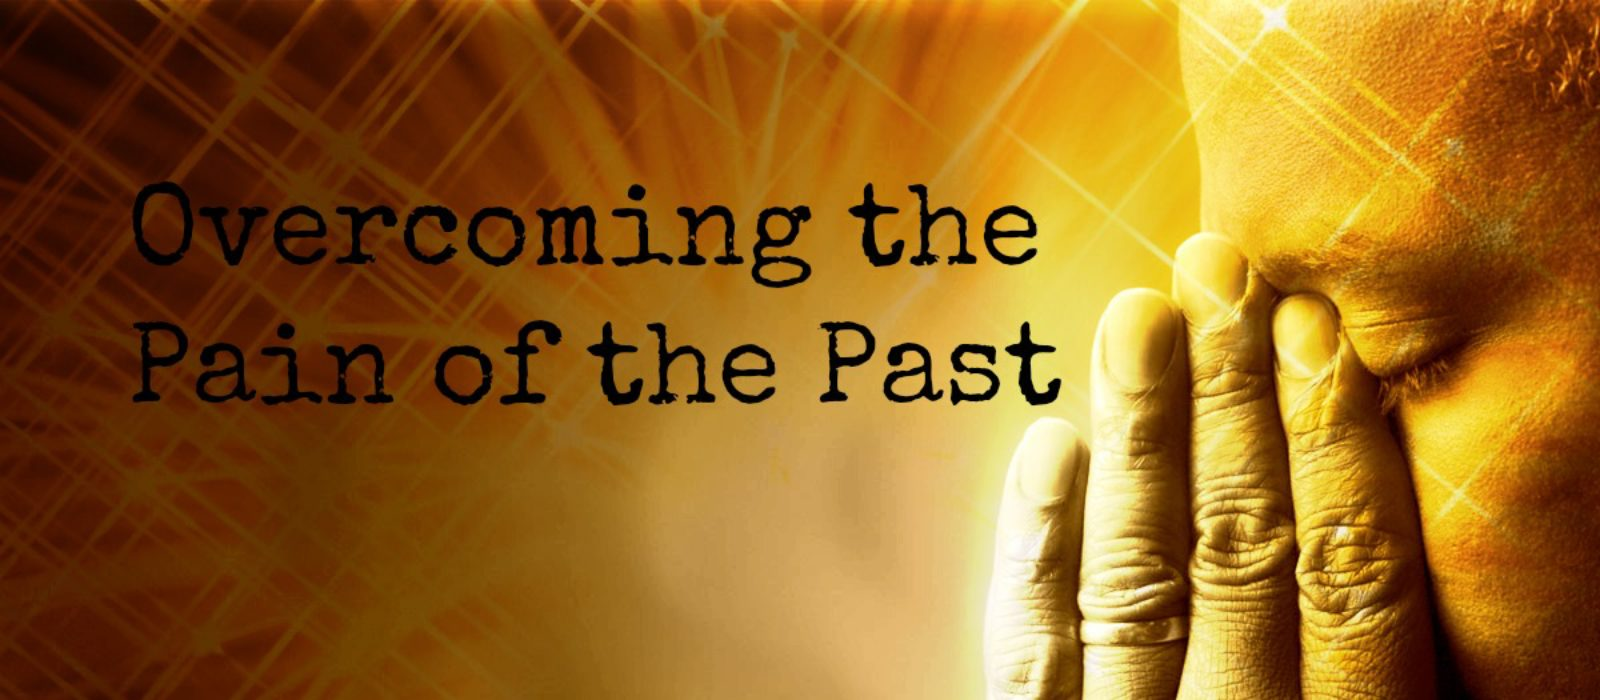 10 Tips for Overcoming the Pain of the Past